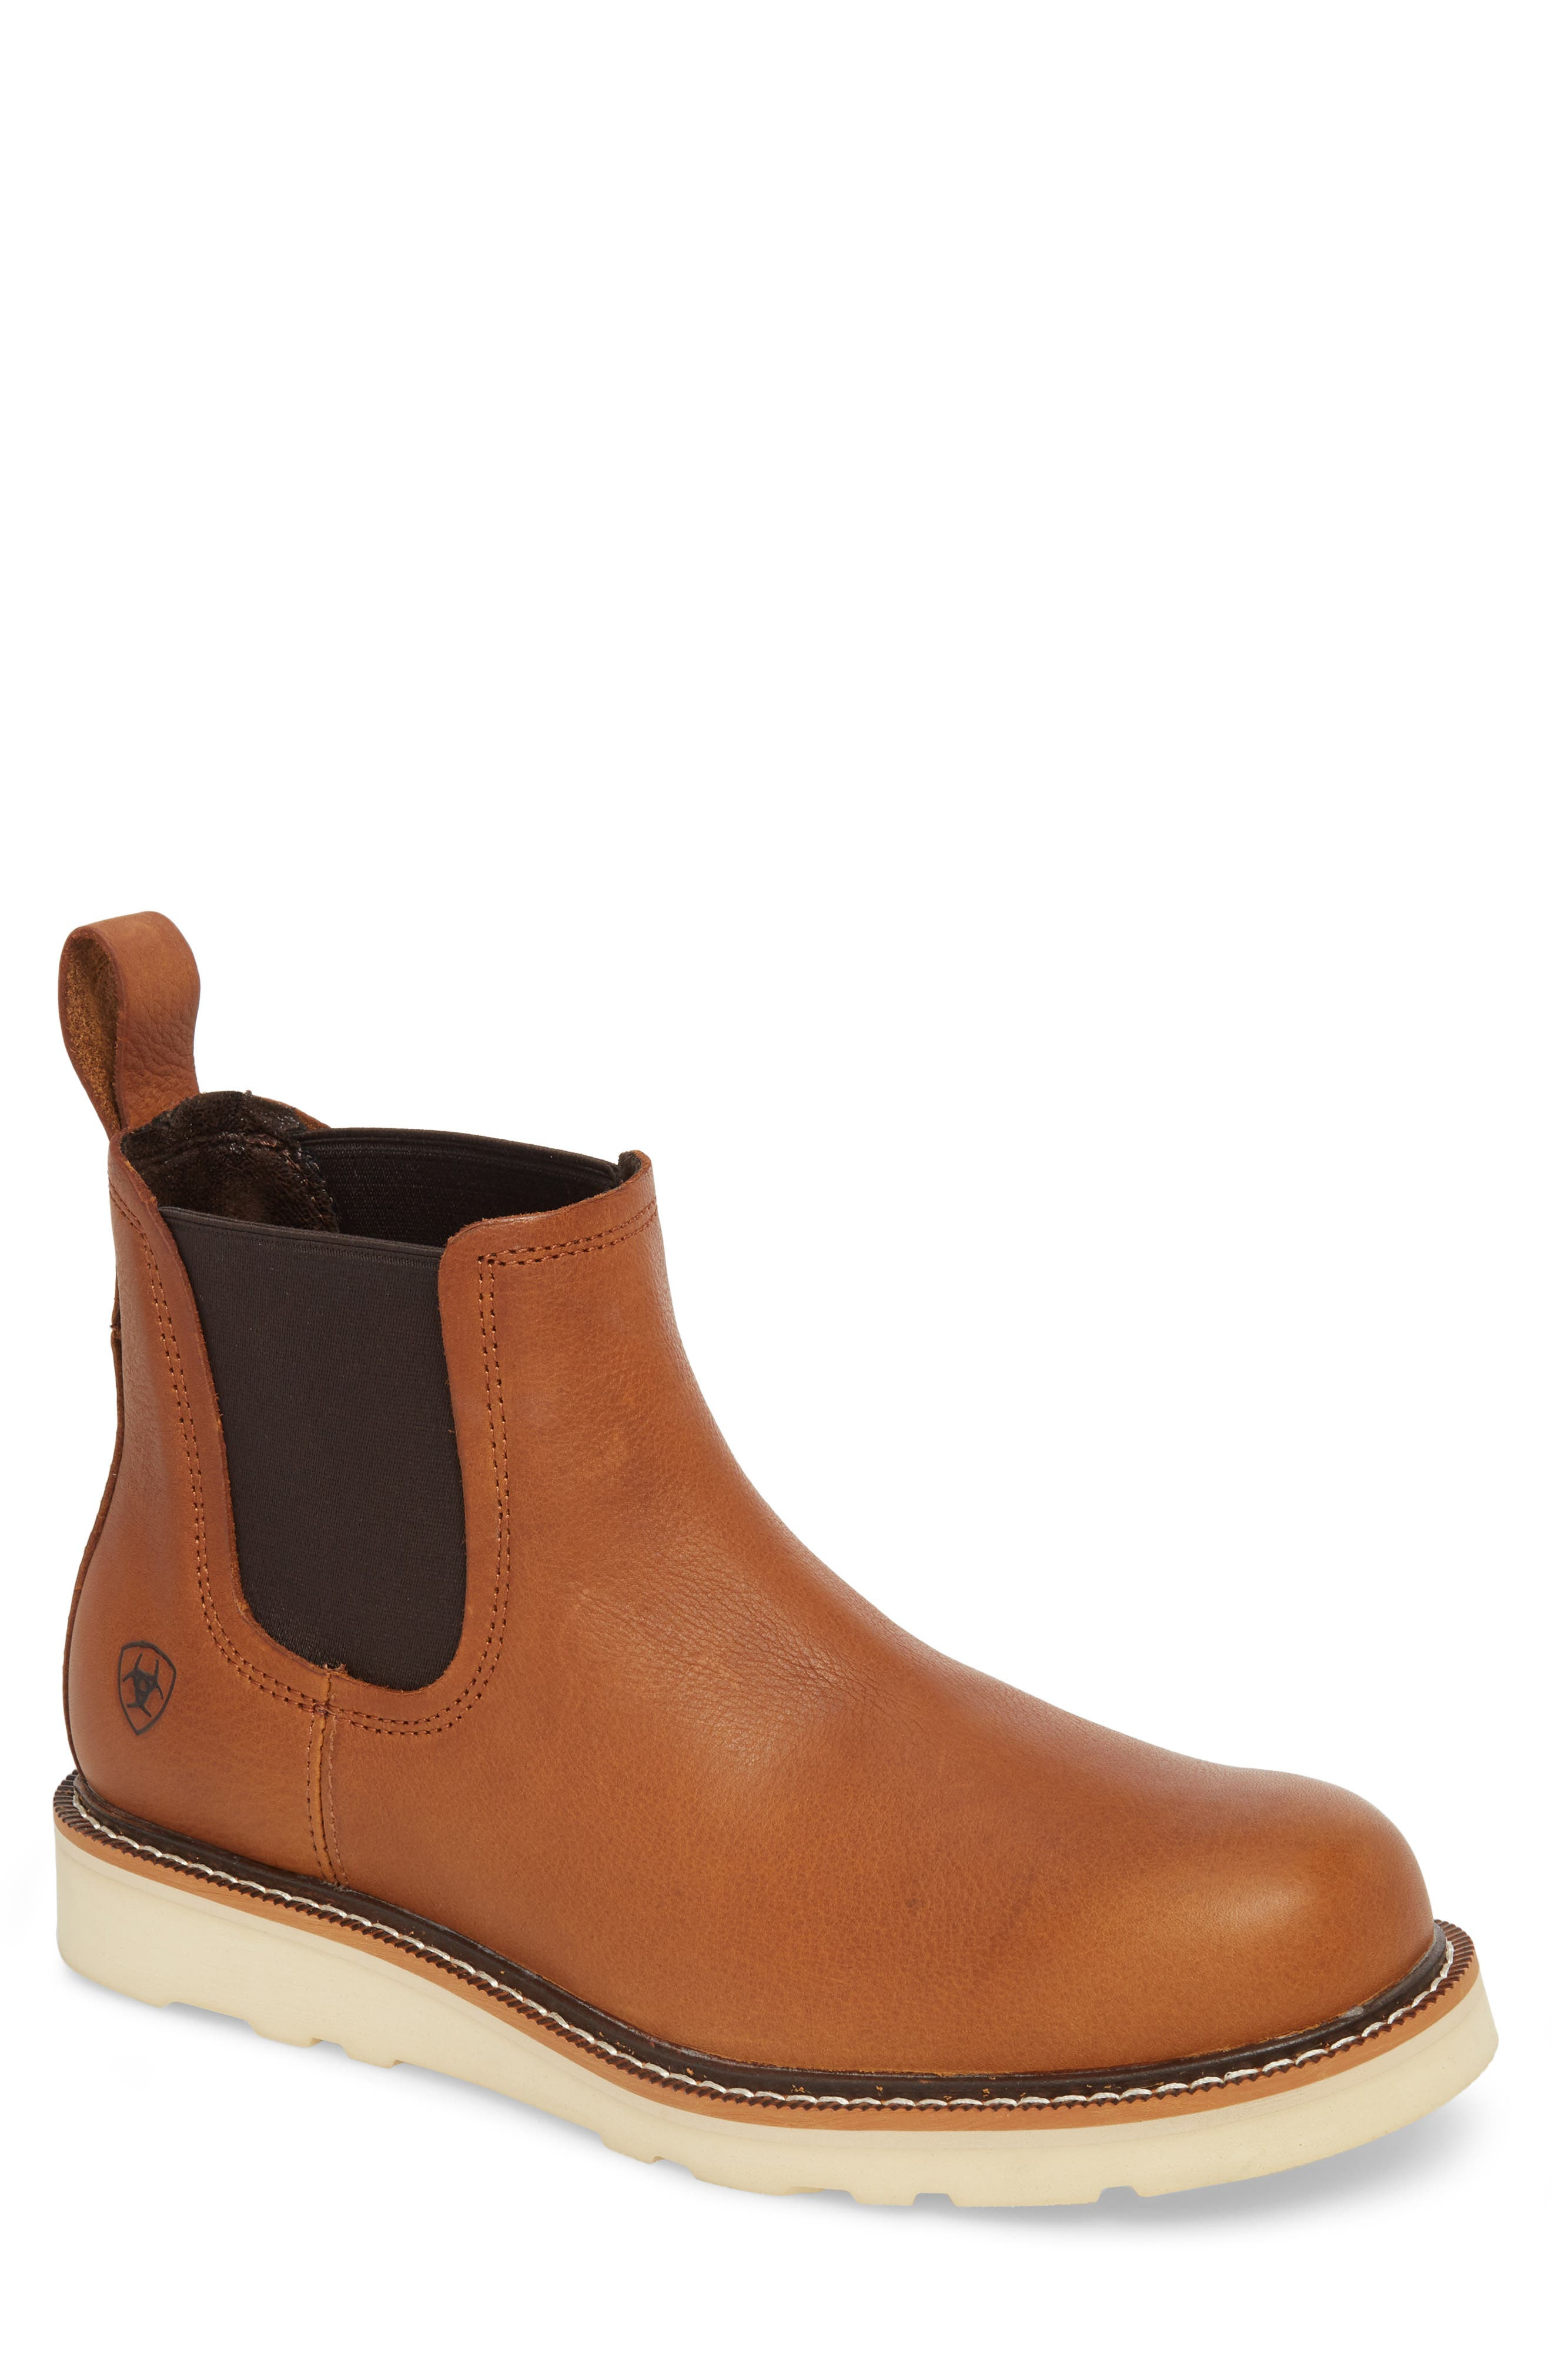 ARIAT, Rambler Recon Mid Chelsea Boot, Main thumbnail 1, color, GOLDEN GRIZZLY